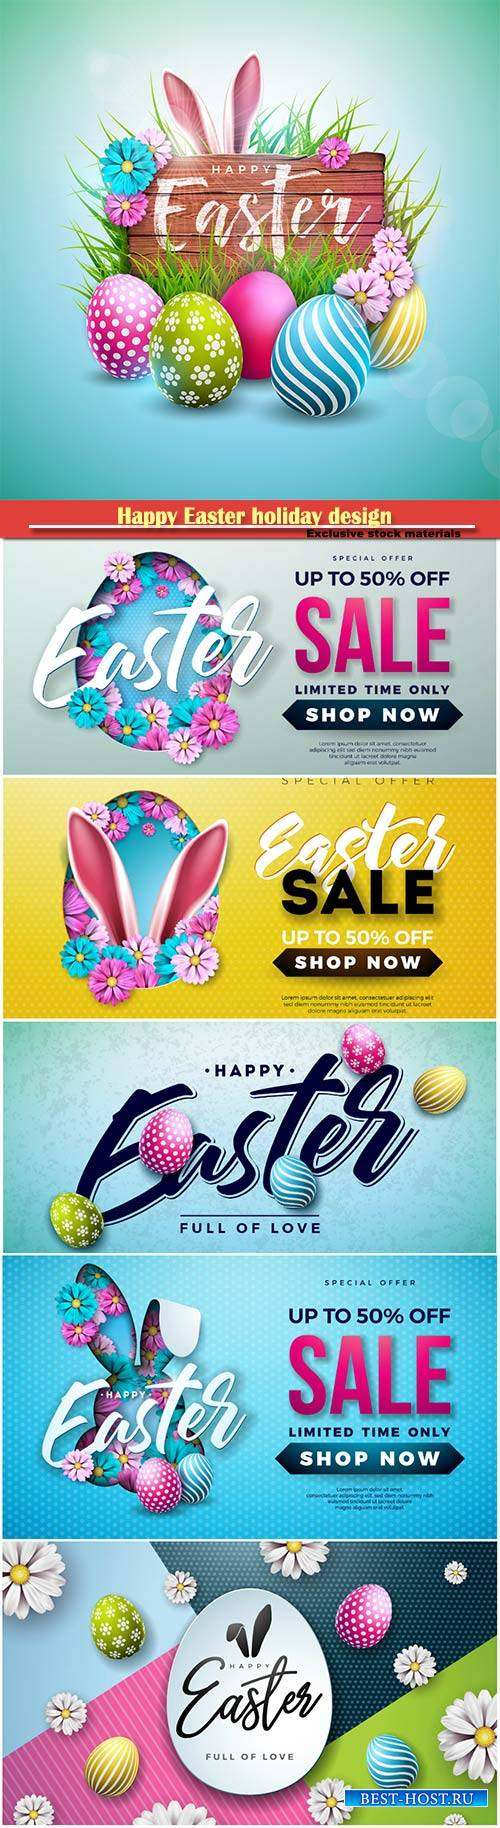 Happy Easter holiday design with painted egg vector illustration